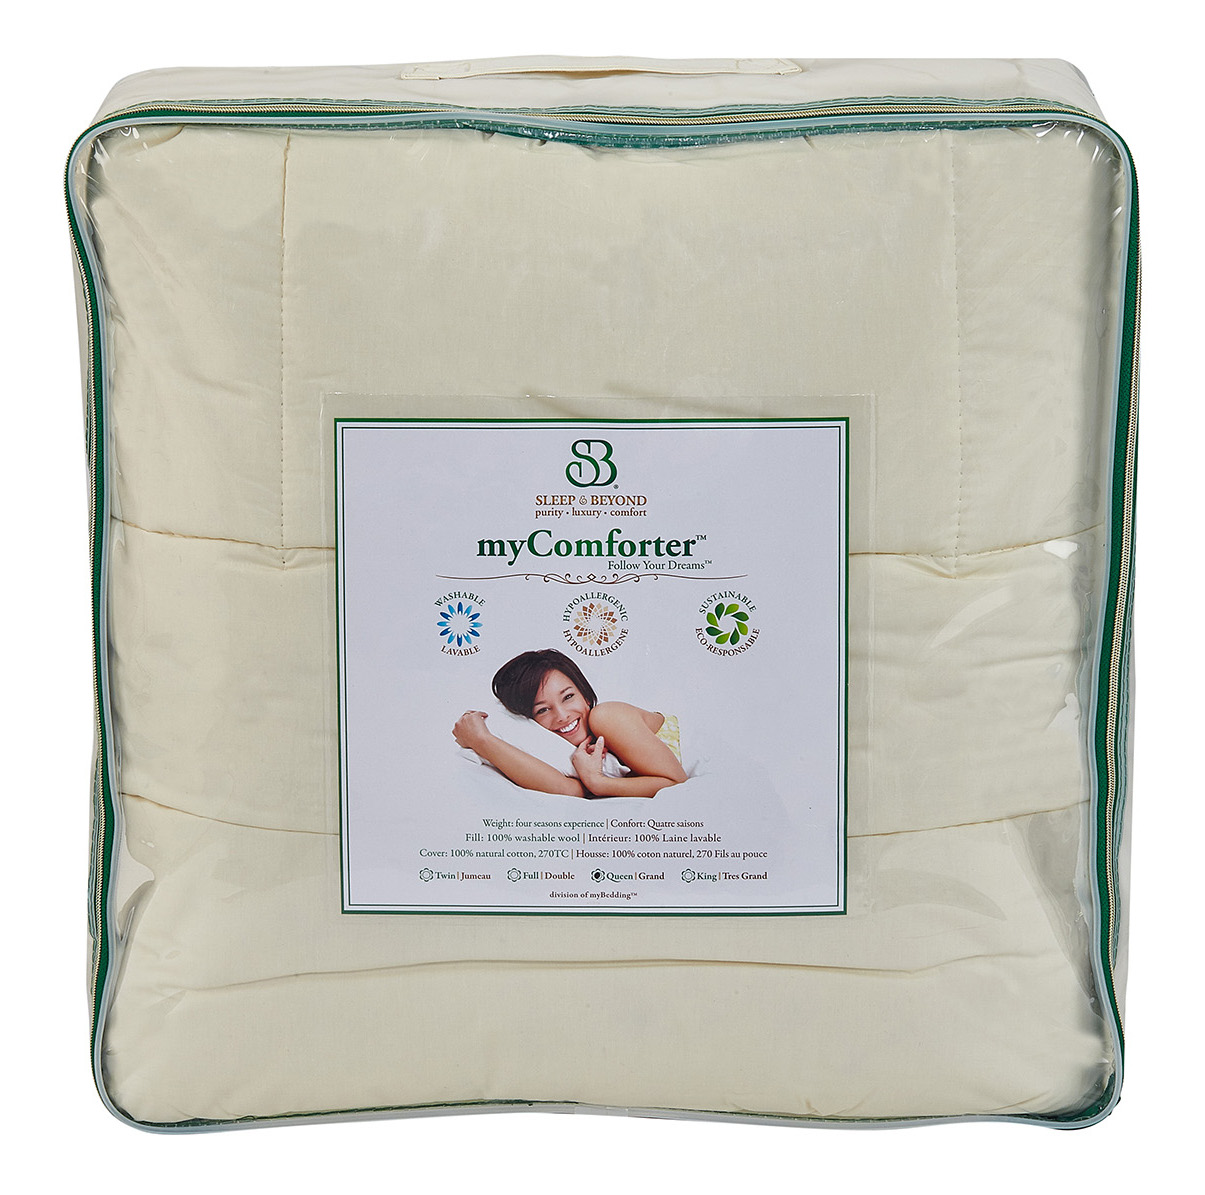 sleep & beyond wool my comforter